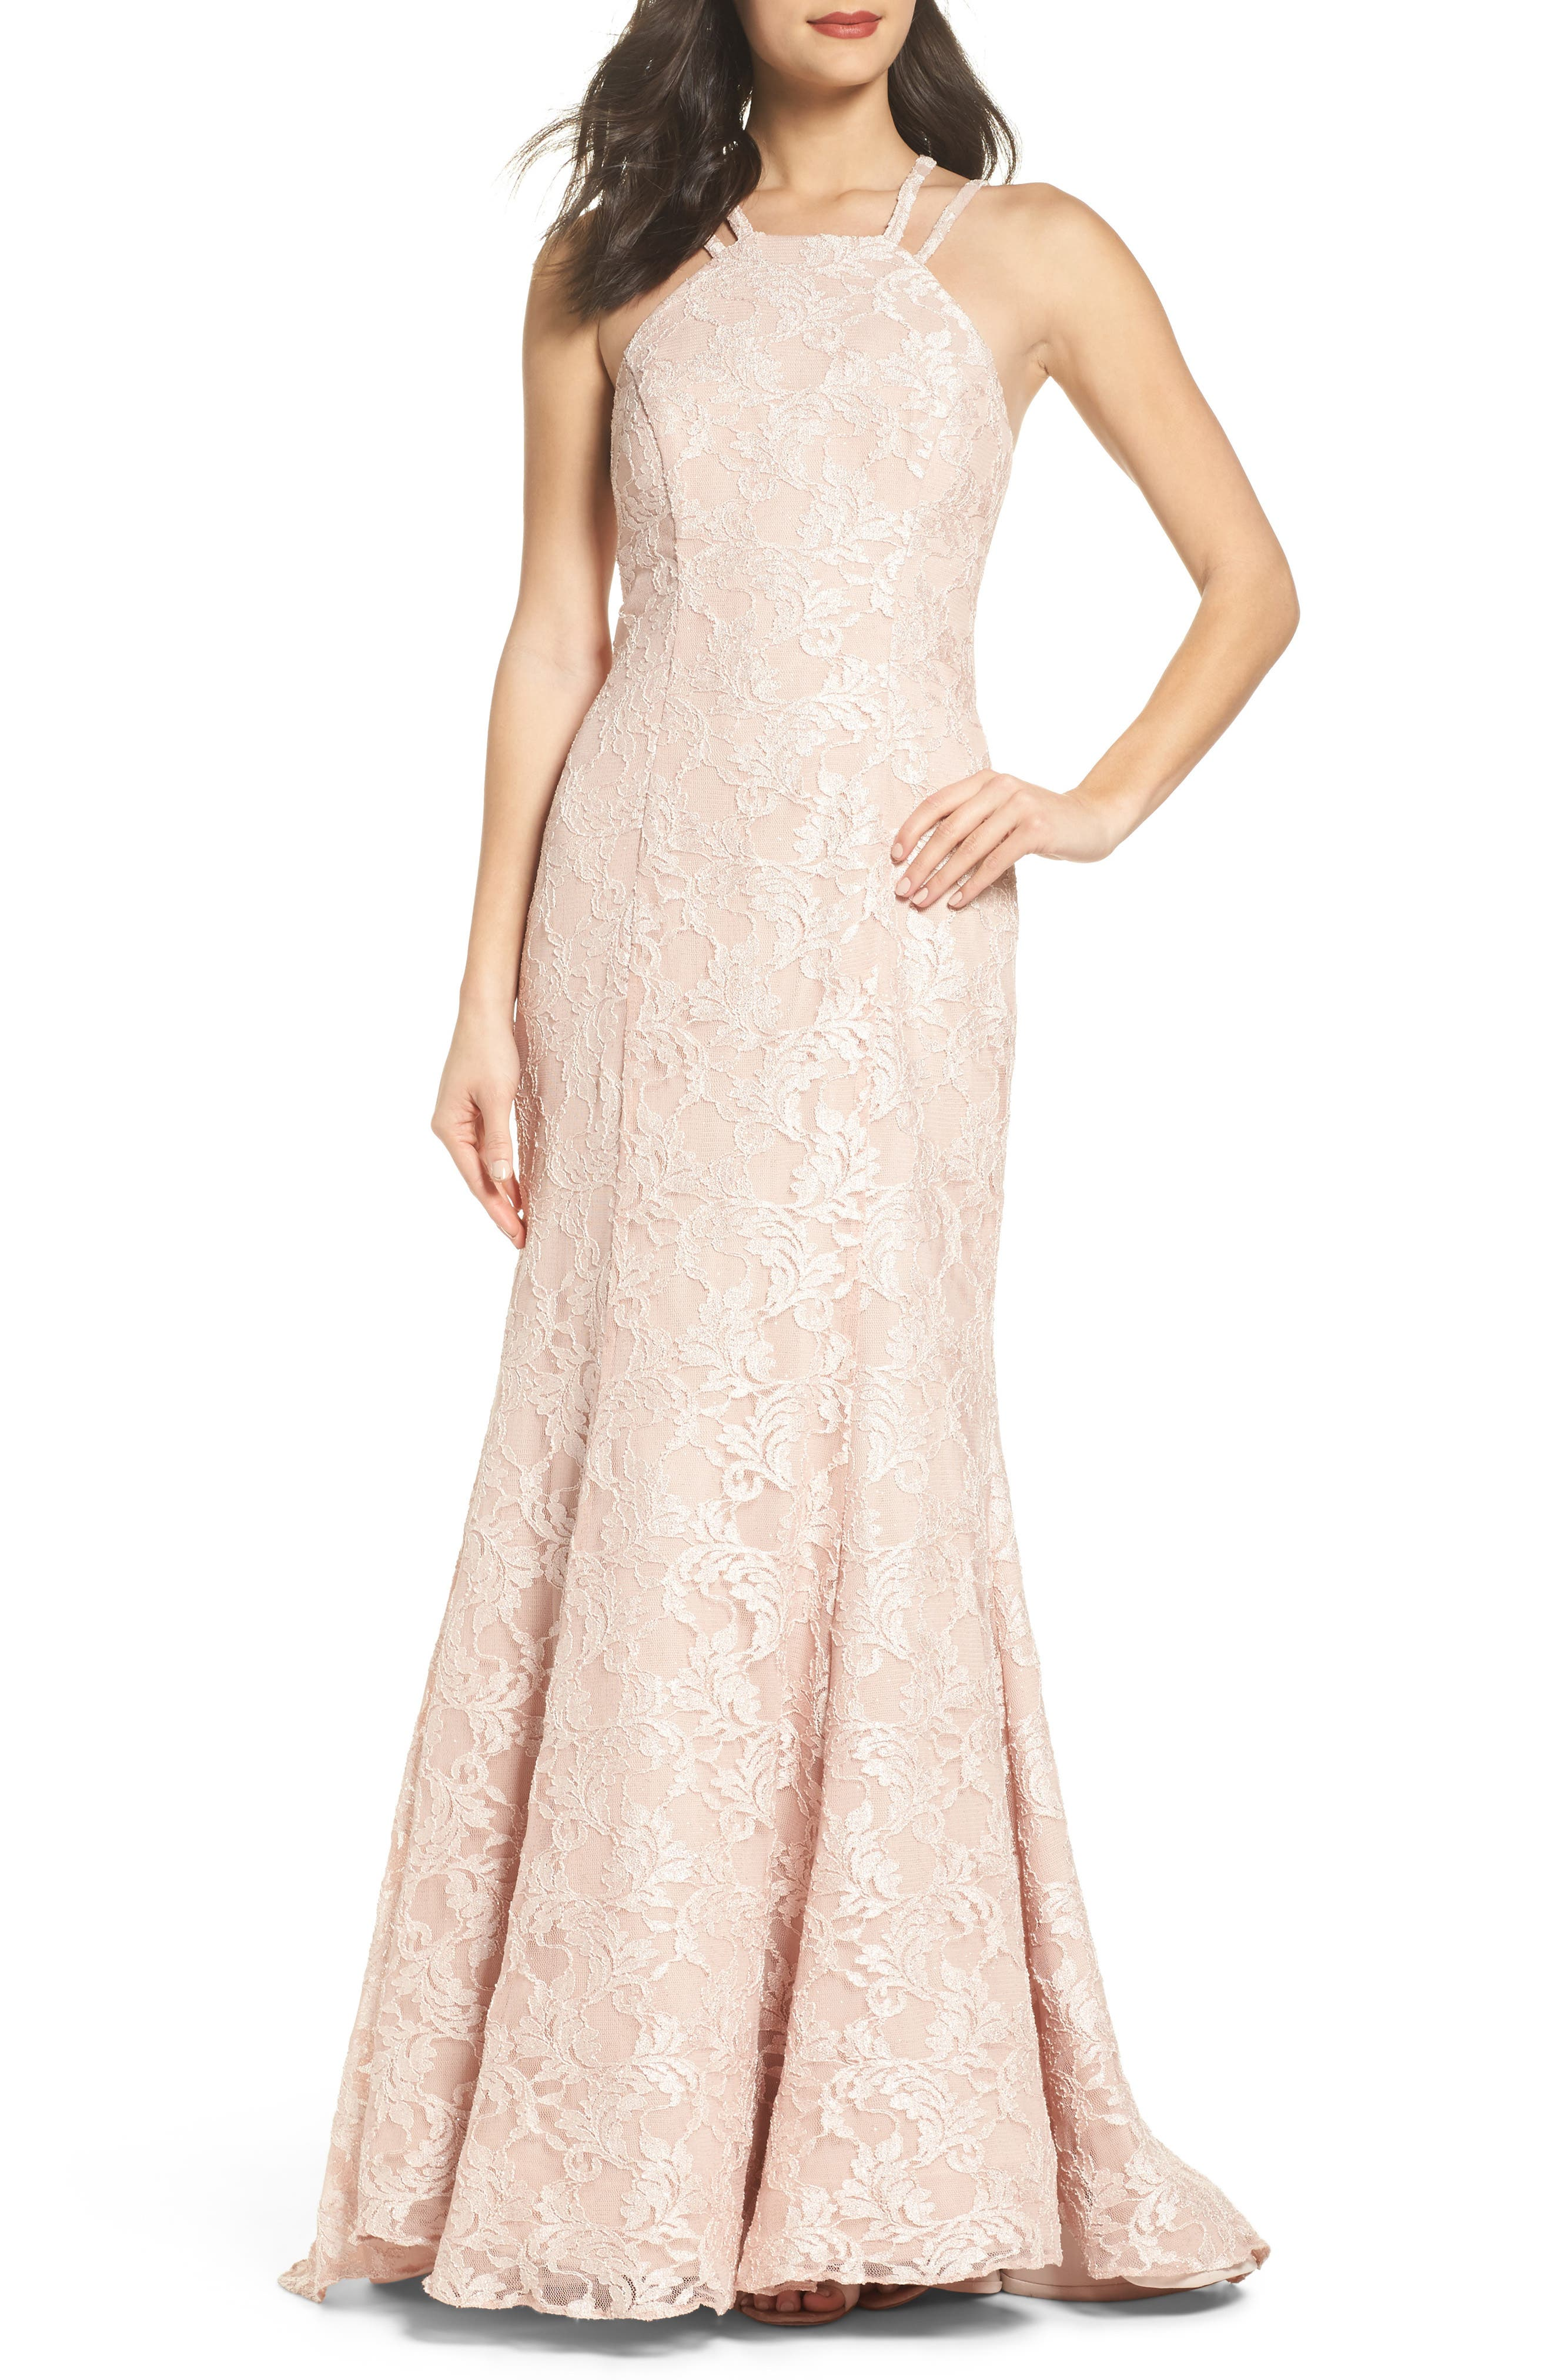 Main Image - Morgan & Co. Strappy Lace Mermaid Gown